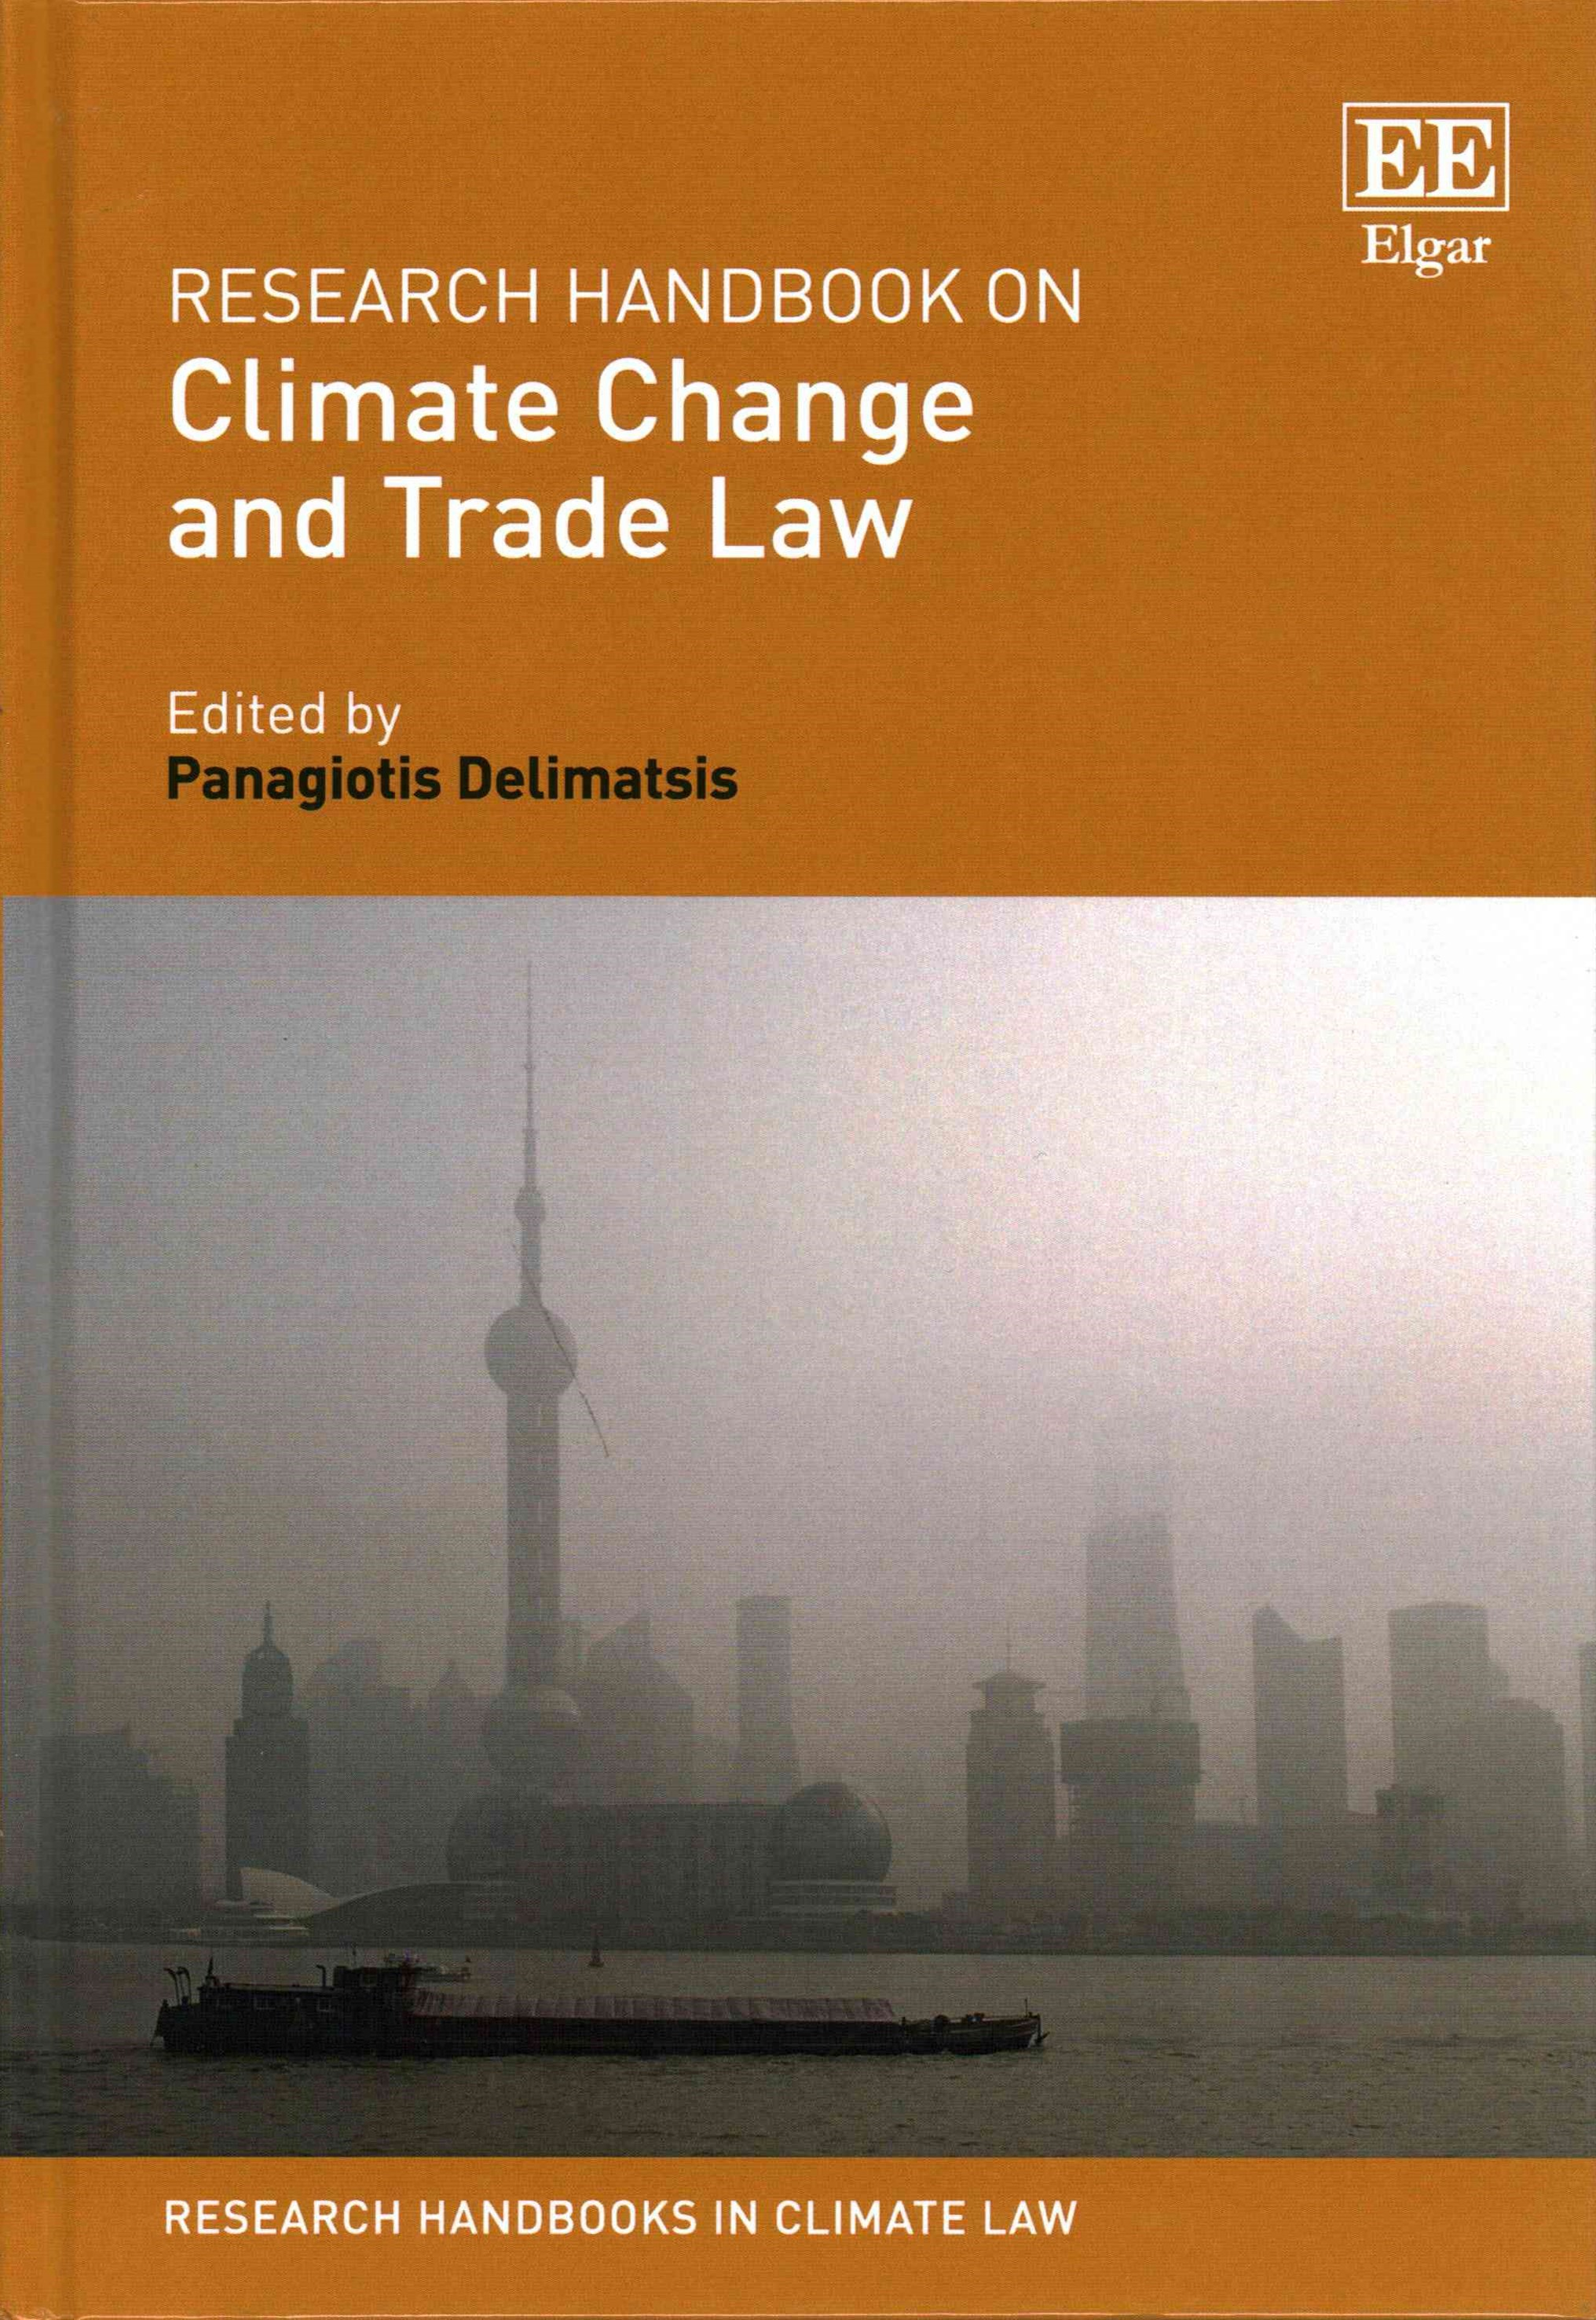 Research Handbook on Climate Change and Trade Law